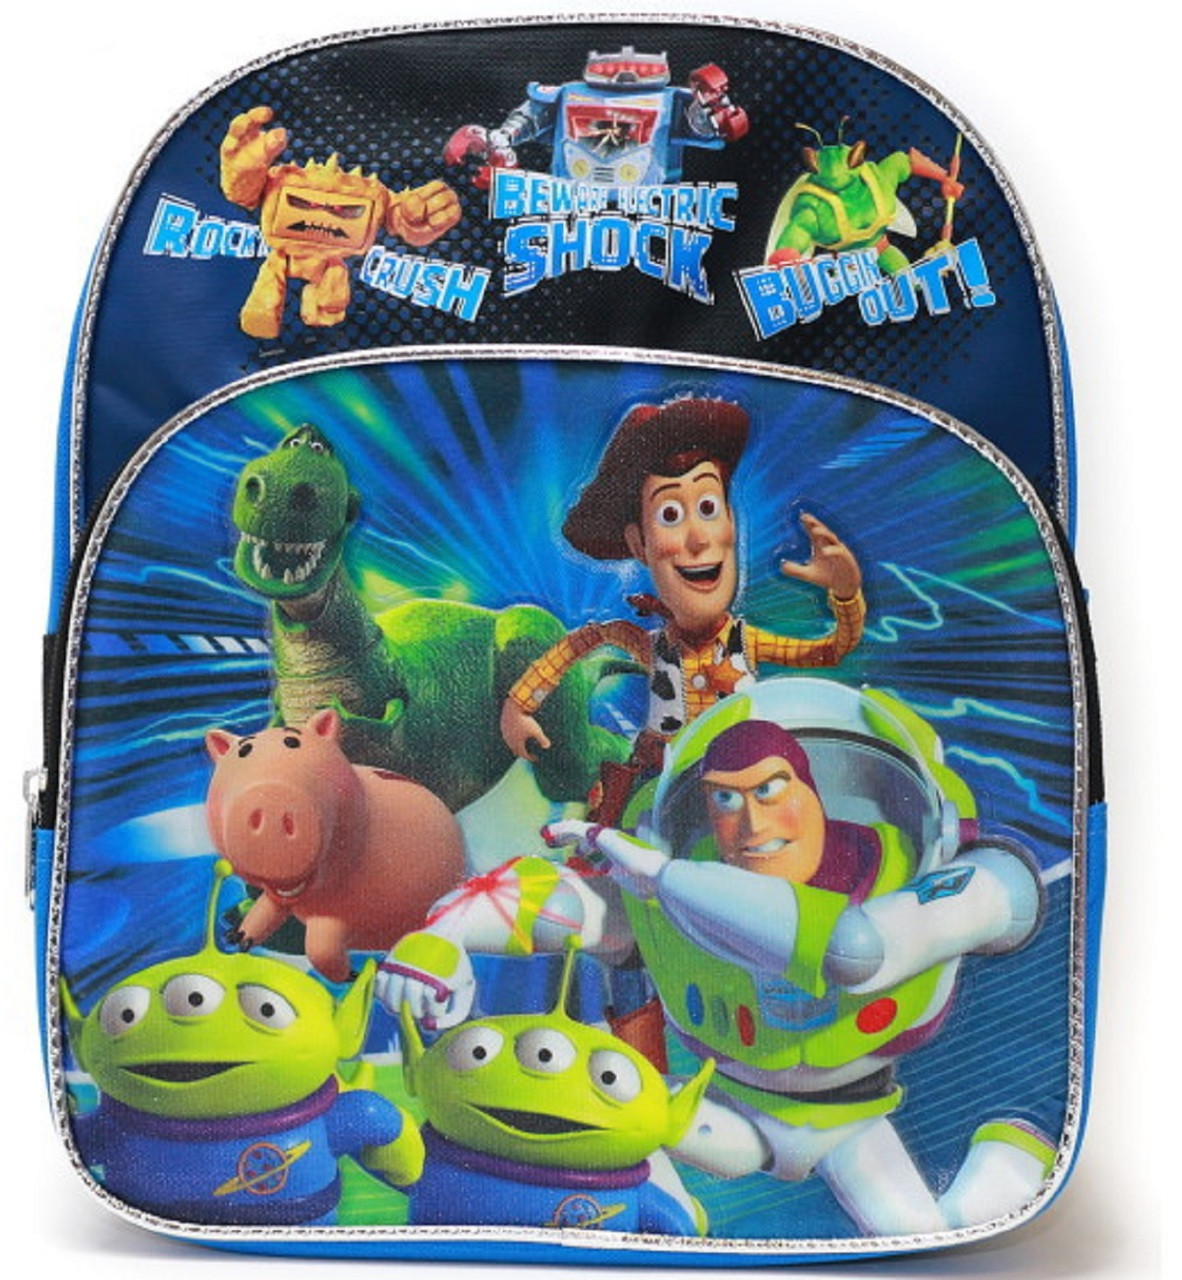 0ed39bf9b0d Small Backpack - Disney - Toys Story 3 - Team Boys New School Bag 501273